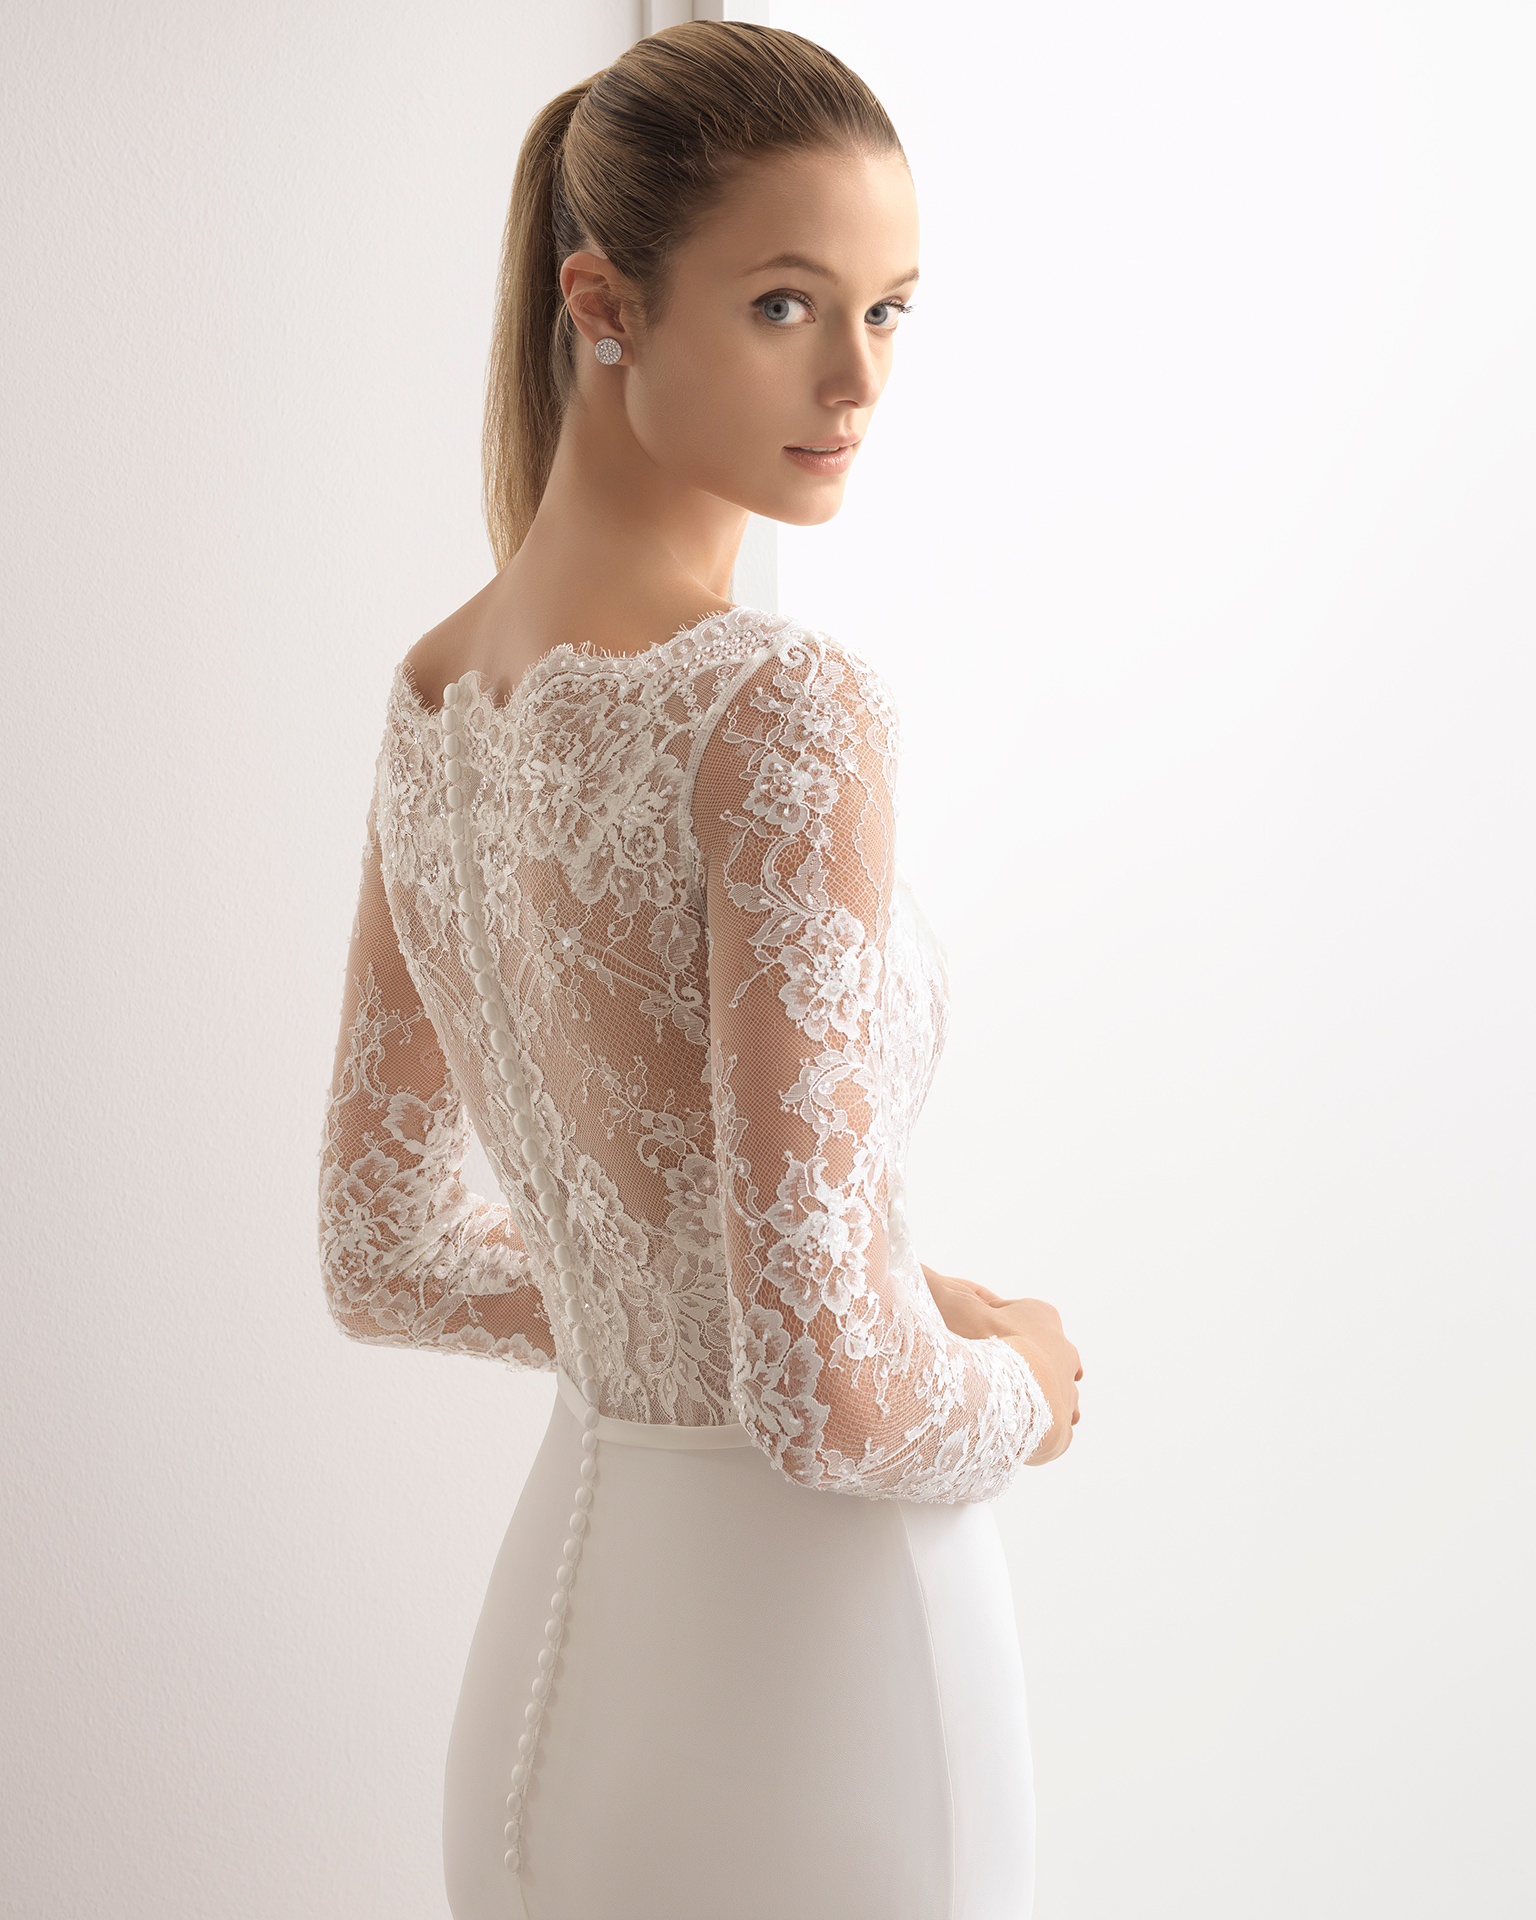 Classic-style beaded sheer lace and crepe Georgette wedding dress with long sleeves and bateau neckline.